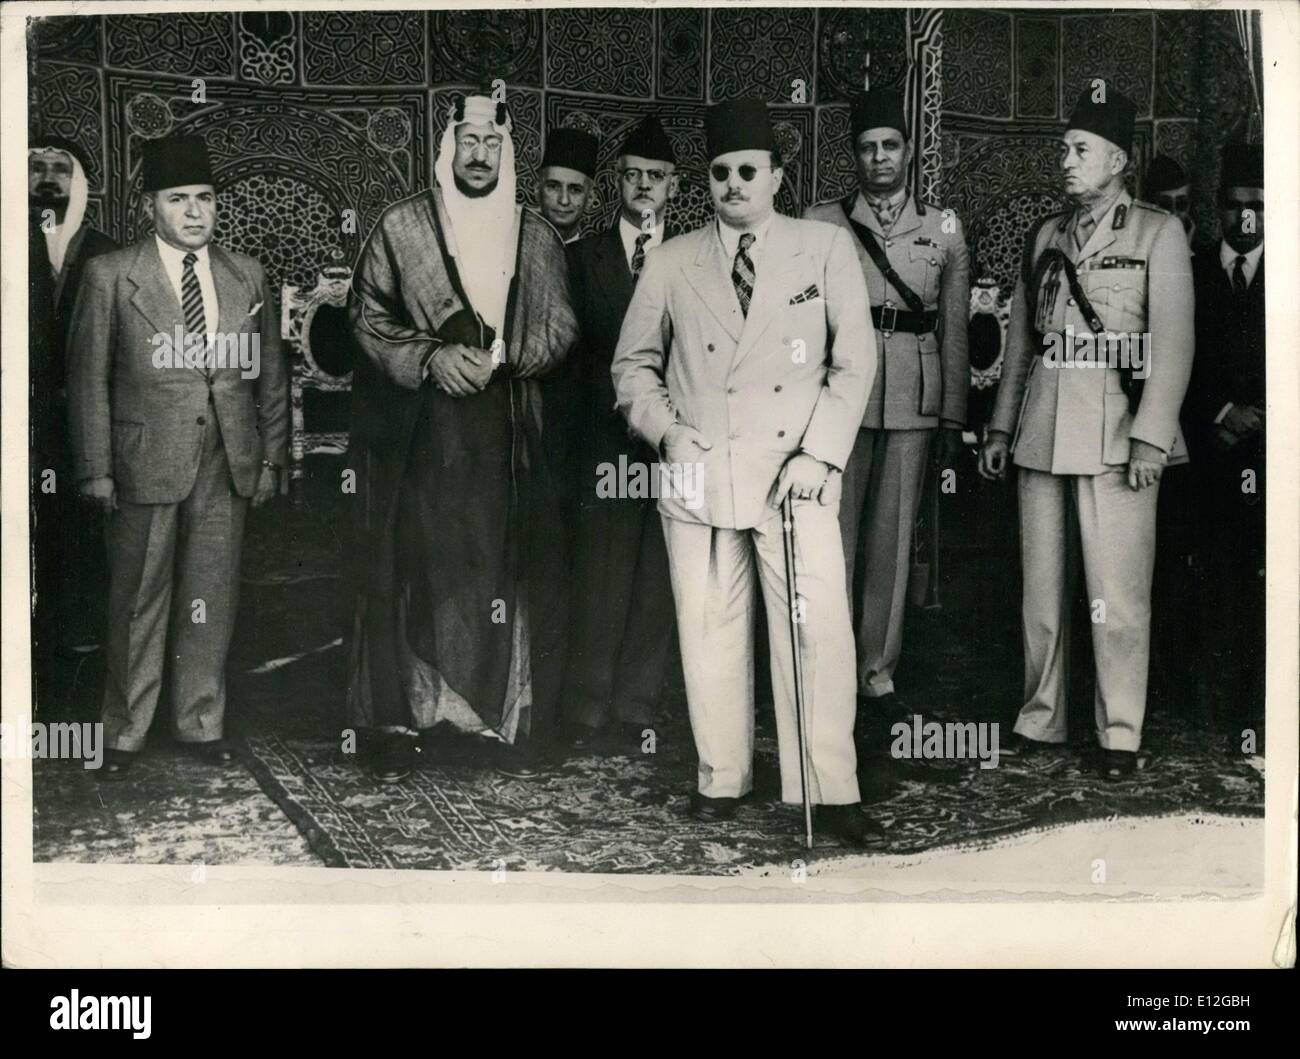 Dec. 26, 2011 - Conclaves of Arab Kings and Rulers: Heads of Arab States was reed at King Farduk's Palace, at Inchass, Near Cairo, on AY 28th and 29th. The meeting which had been called by the King of Egypt, was attended by the new King of Transdah,  Dullan Prince Abdul , regent of Iraq; Sheik  at Khoury, Lebanese president; Shuery ey al Kuwatly, Syrian Presidnt , Prince Soud, ledest son of King IBM Seoud and Prince if EL islam, Eldest son of the Isam of Yemen. Picture Shows: King Farouk waits for his Guesy. standing next to new is Prince Seoud, heir to the Hedjaz Throne. - Stock Image